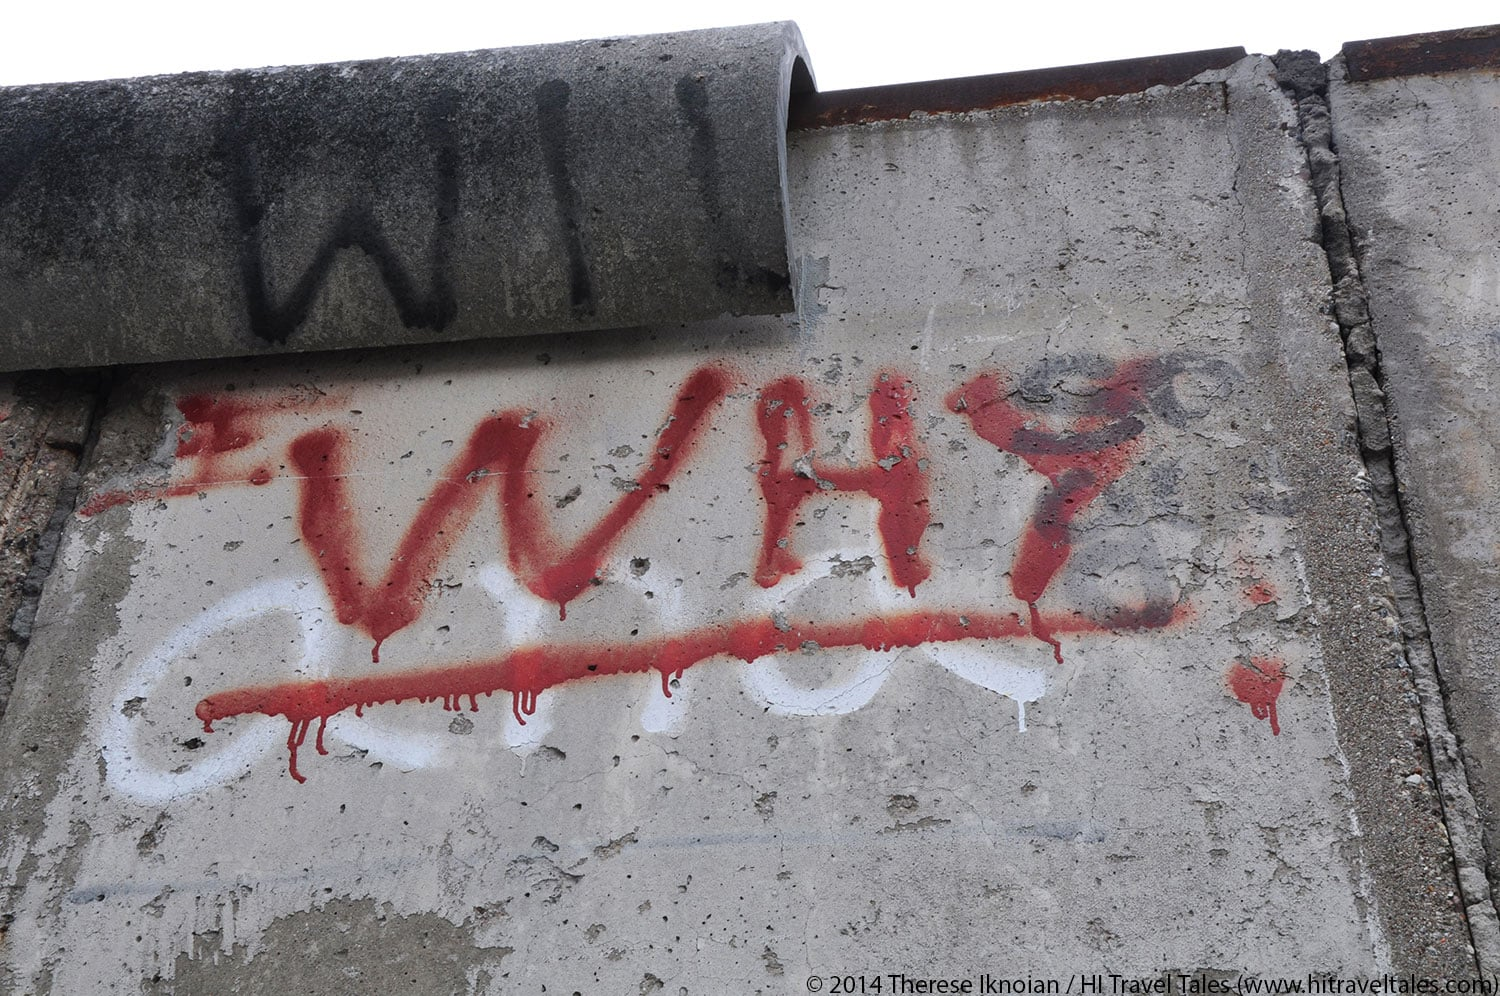 Berlin Wall 25th anniversary commemorates fall and freedom